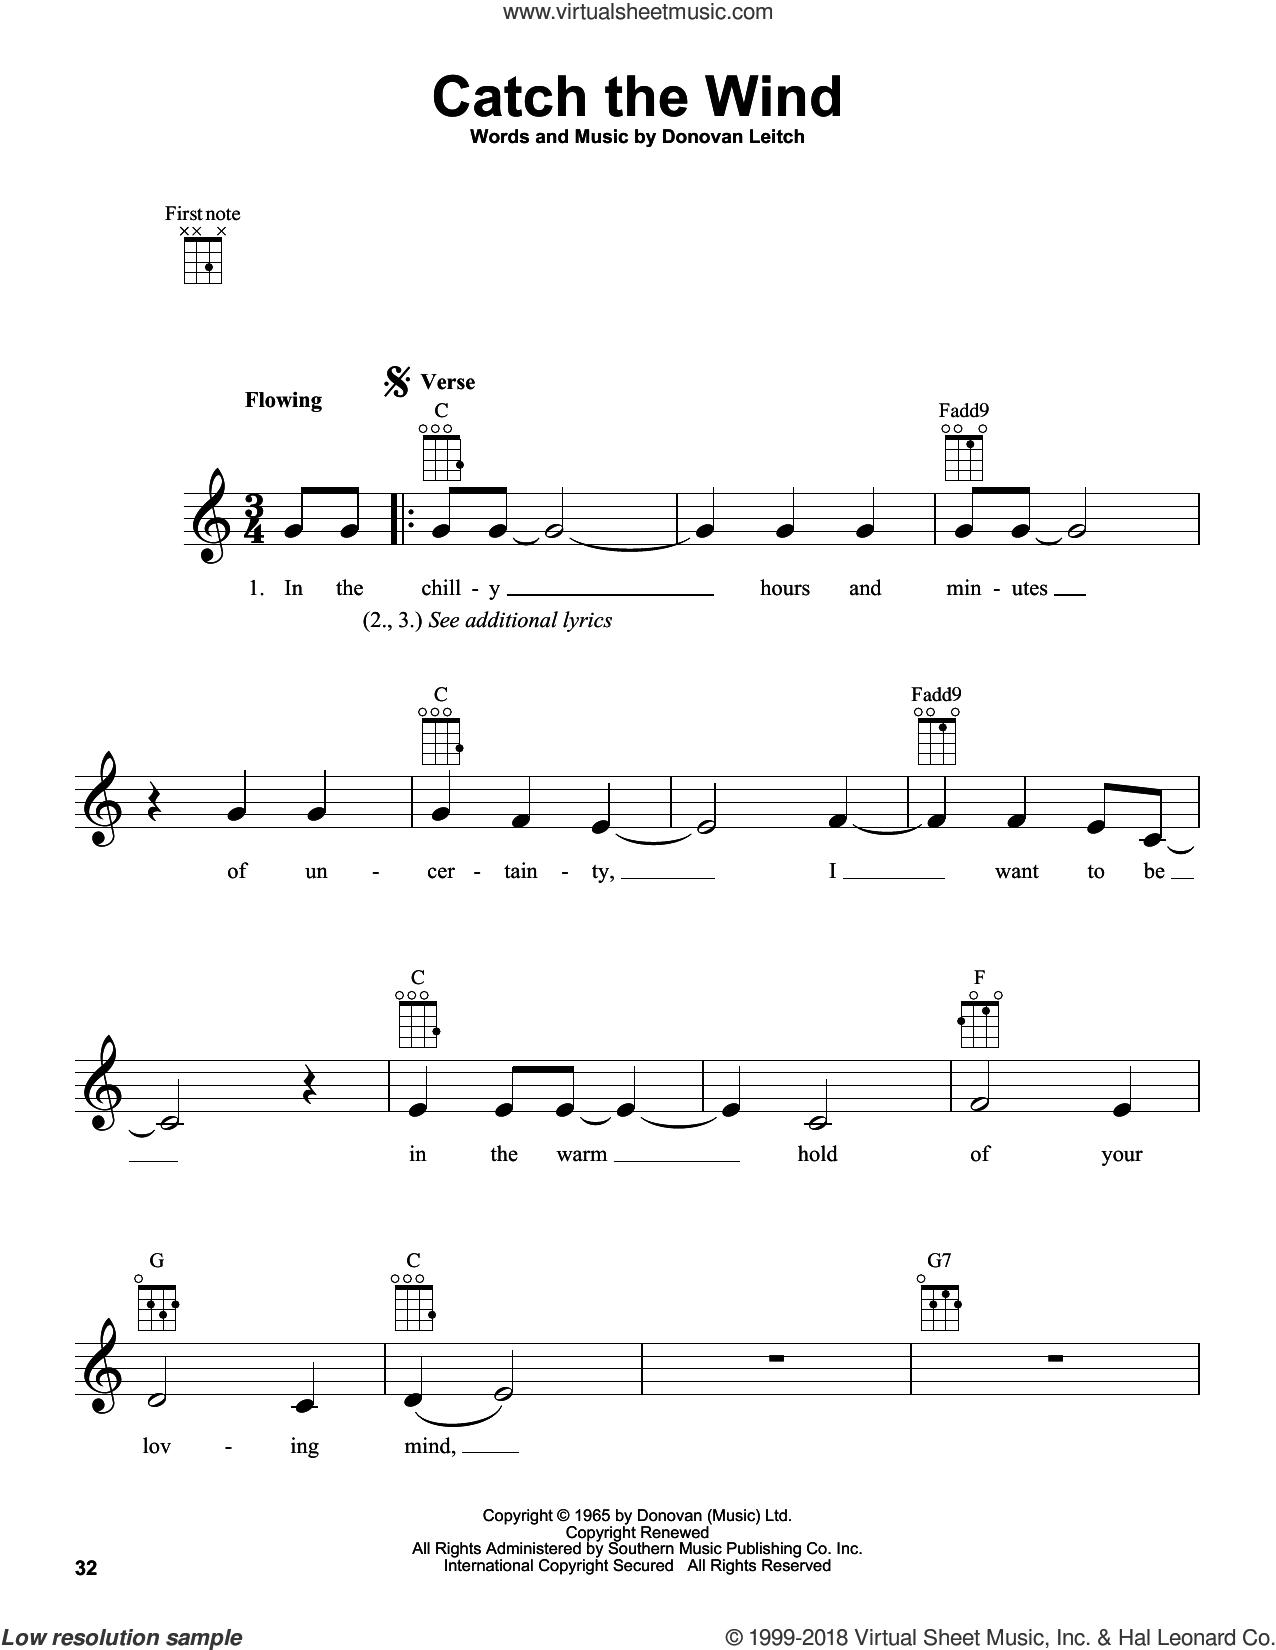 Catch The Wind sheet music for ukulele by Walter Donovan and Donovan Leitch, intermediate skill level